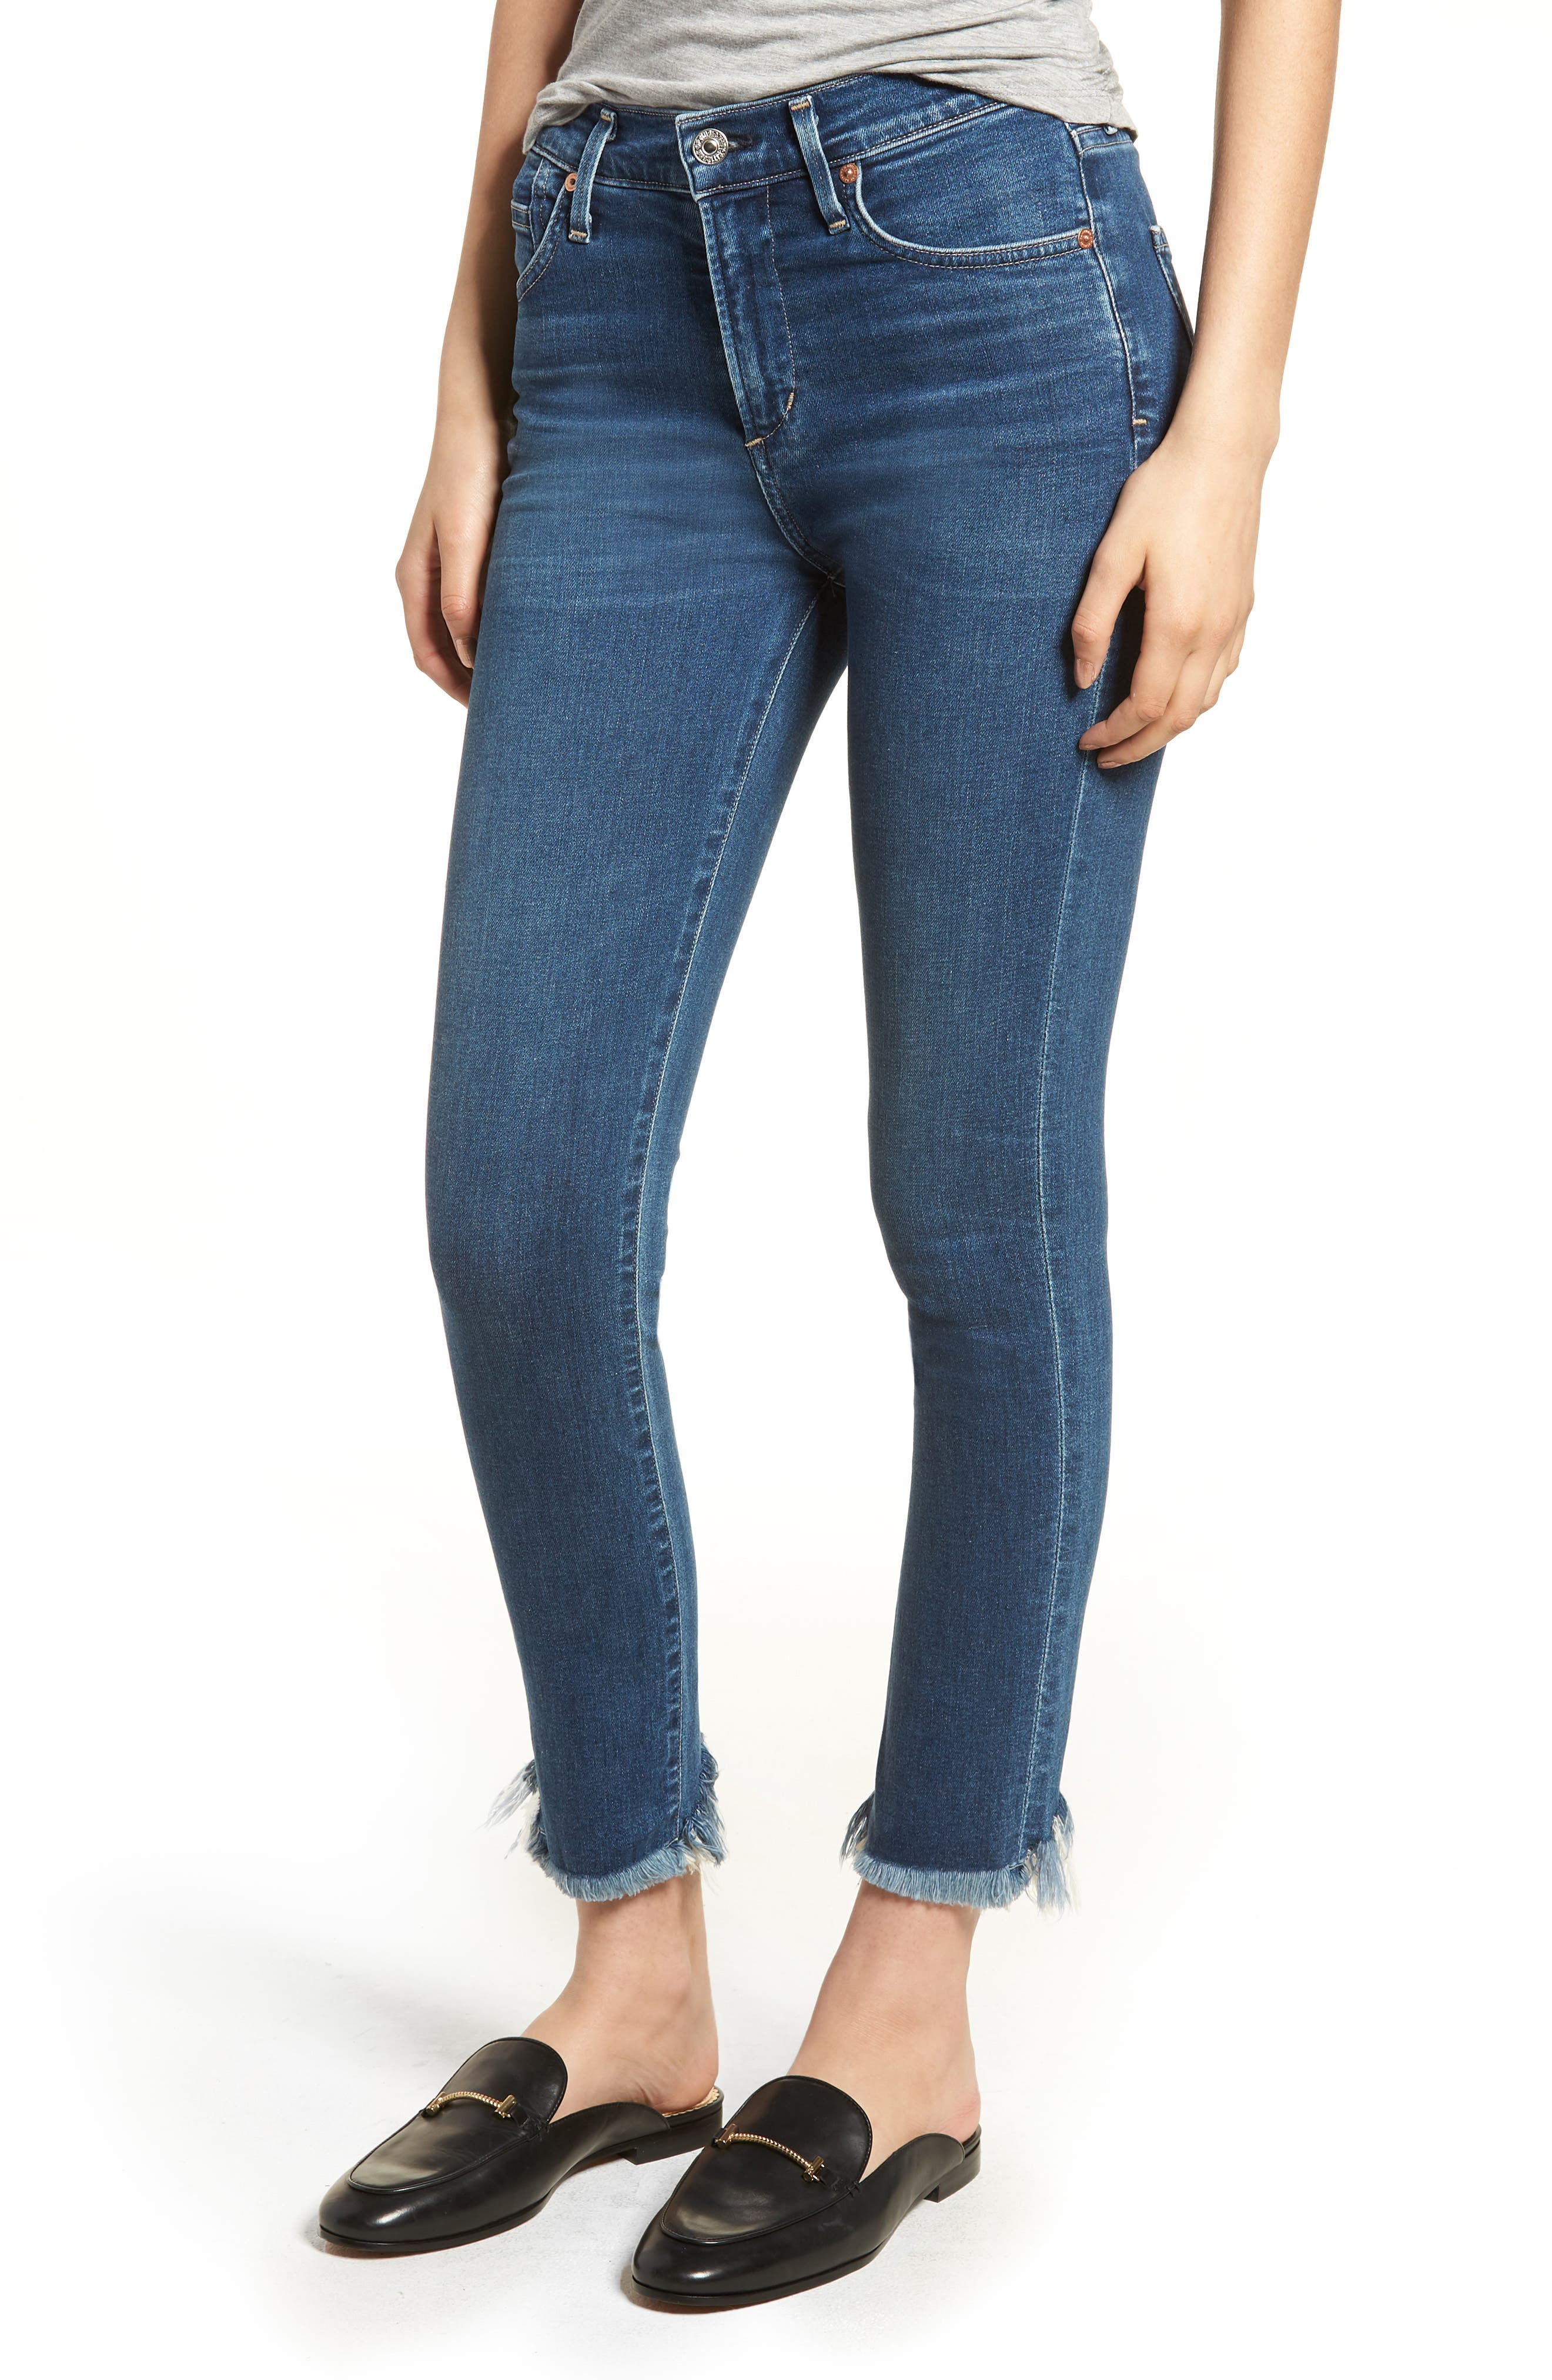 CITIZENS OF HUMANITY, Rocket High Waist Crop Skinny Jeans, Main thumbnail 1, color, FREQUENCY